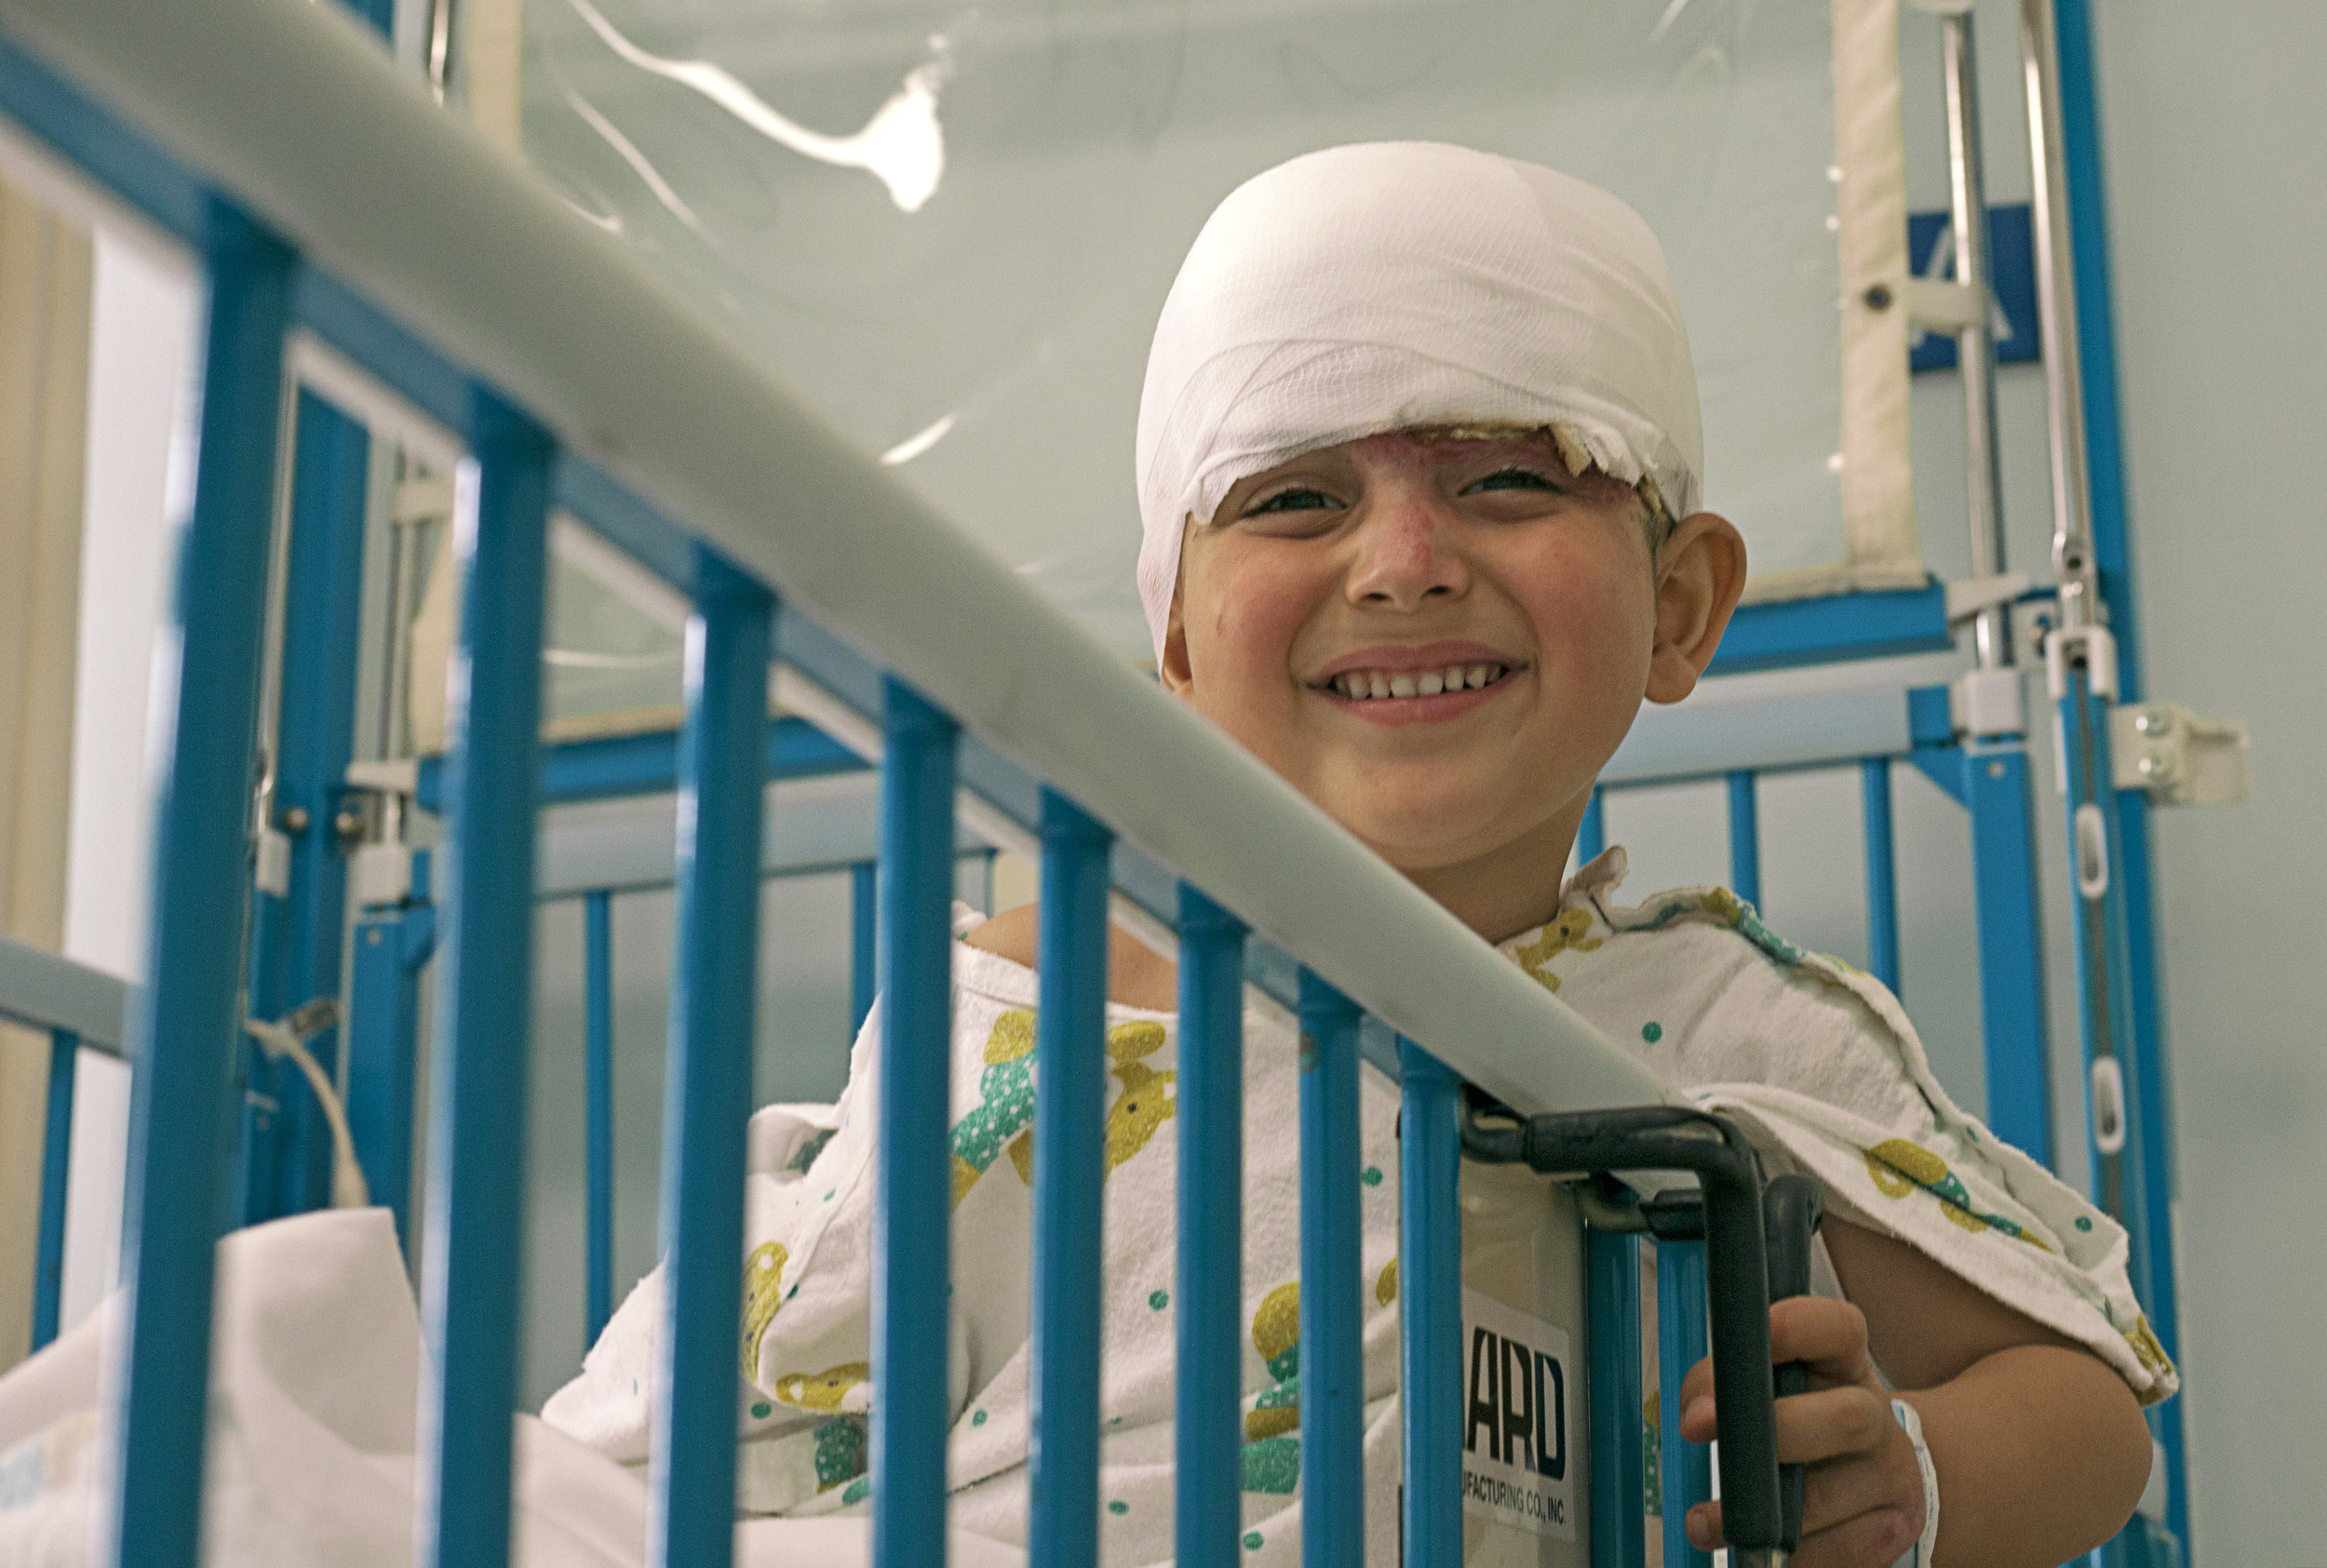 Khalil prior to his surgery at AUBMC.